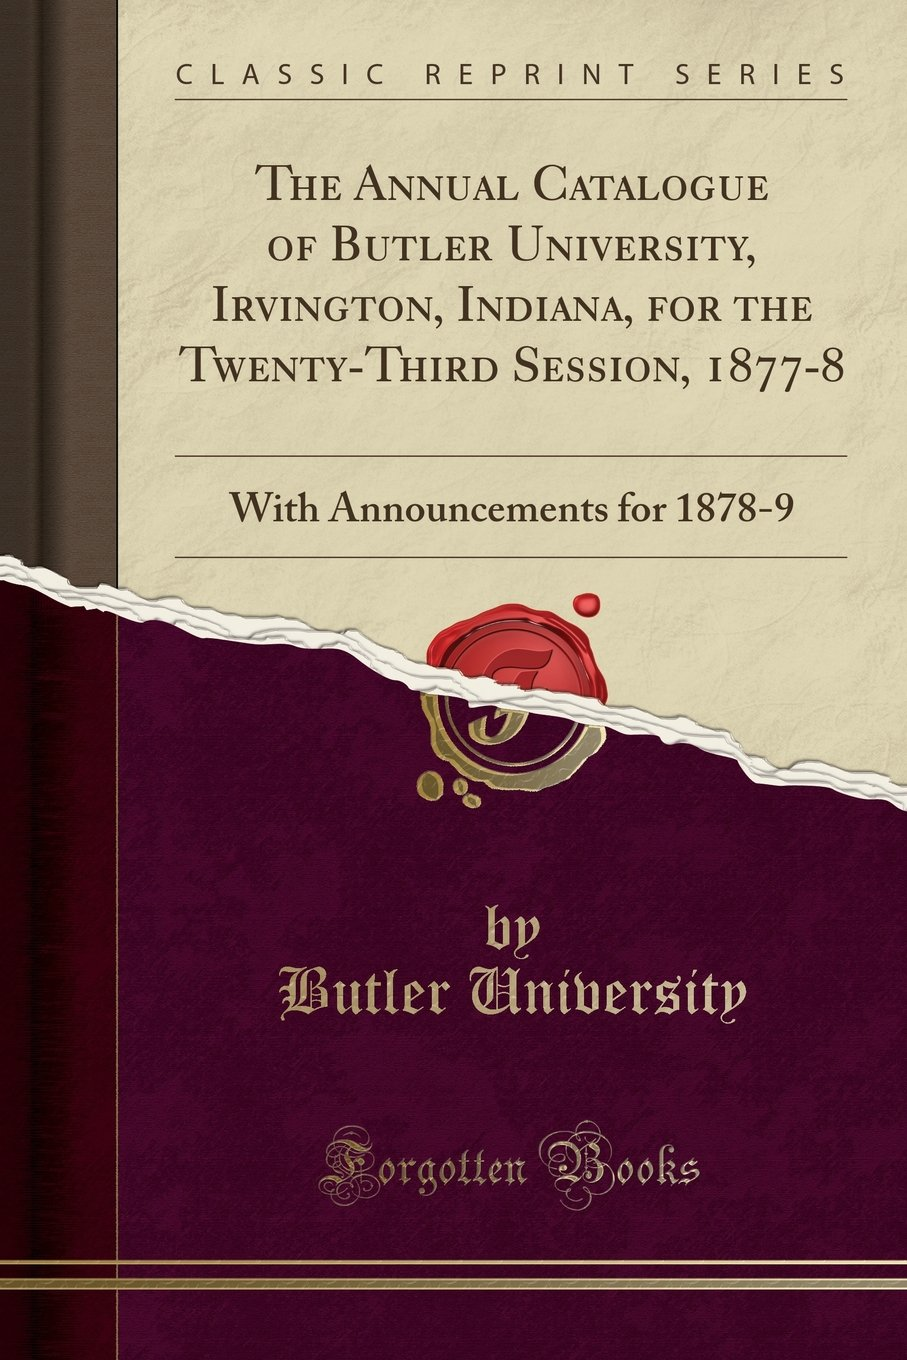 Read Online The Annual Catalogue of Butler University, Irvington, Indiana, for the Twenty-Third Session, 1877-8: With Announcements for 1878-9 (Classic Reprint) ebook